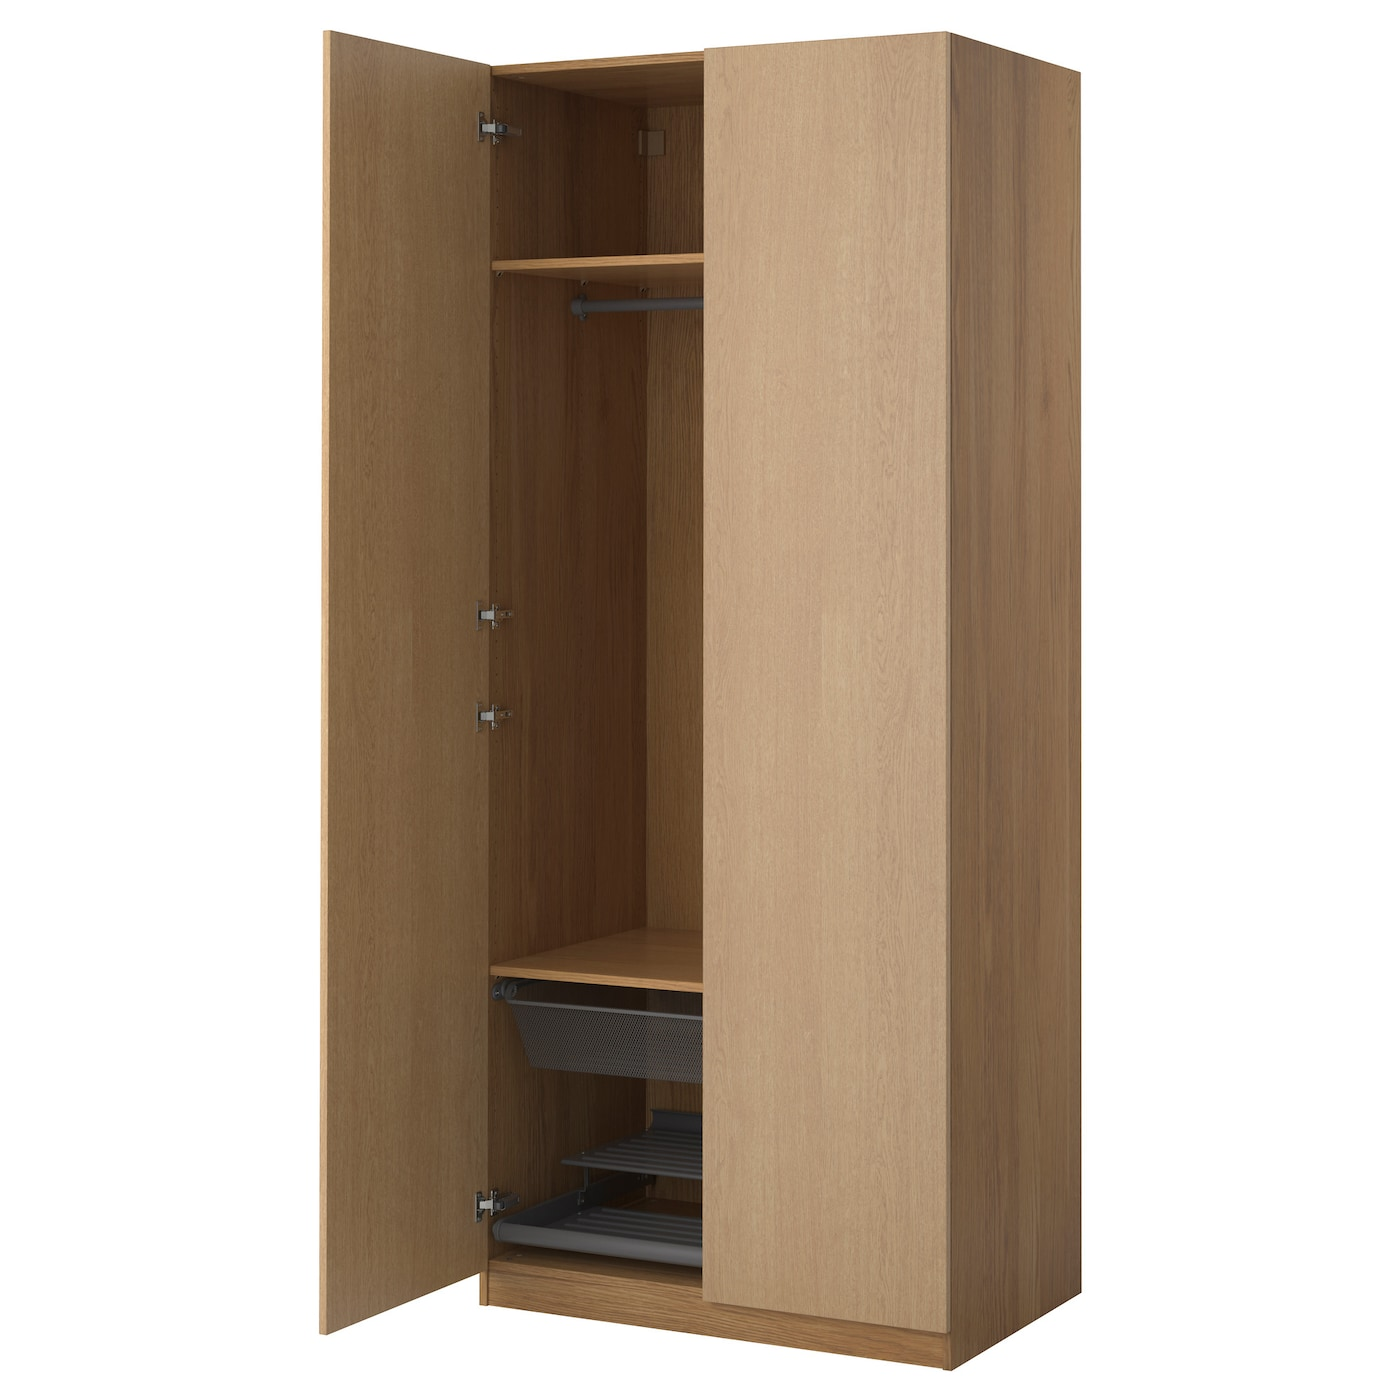 pax wardrobe oak effect nexus oak veneer 100x60x236 cm ikea. Black Bedroom Furniture Sets. Home Design Ideas